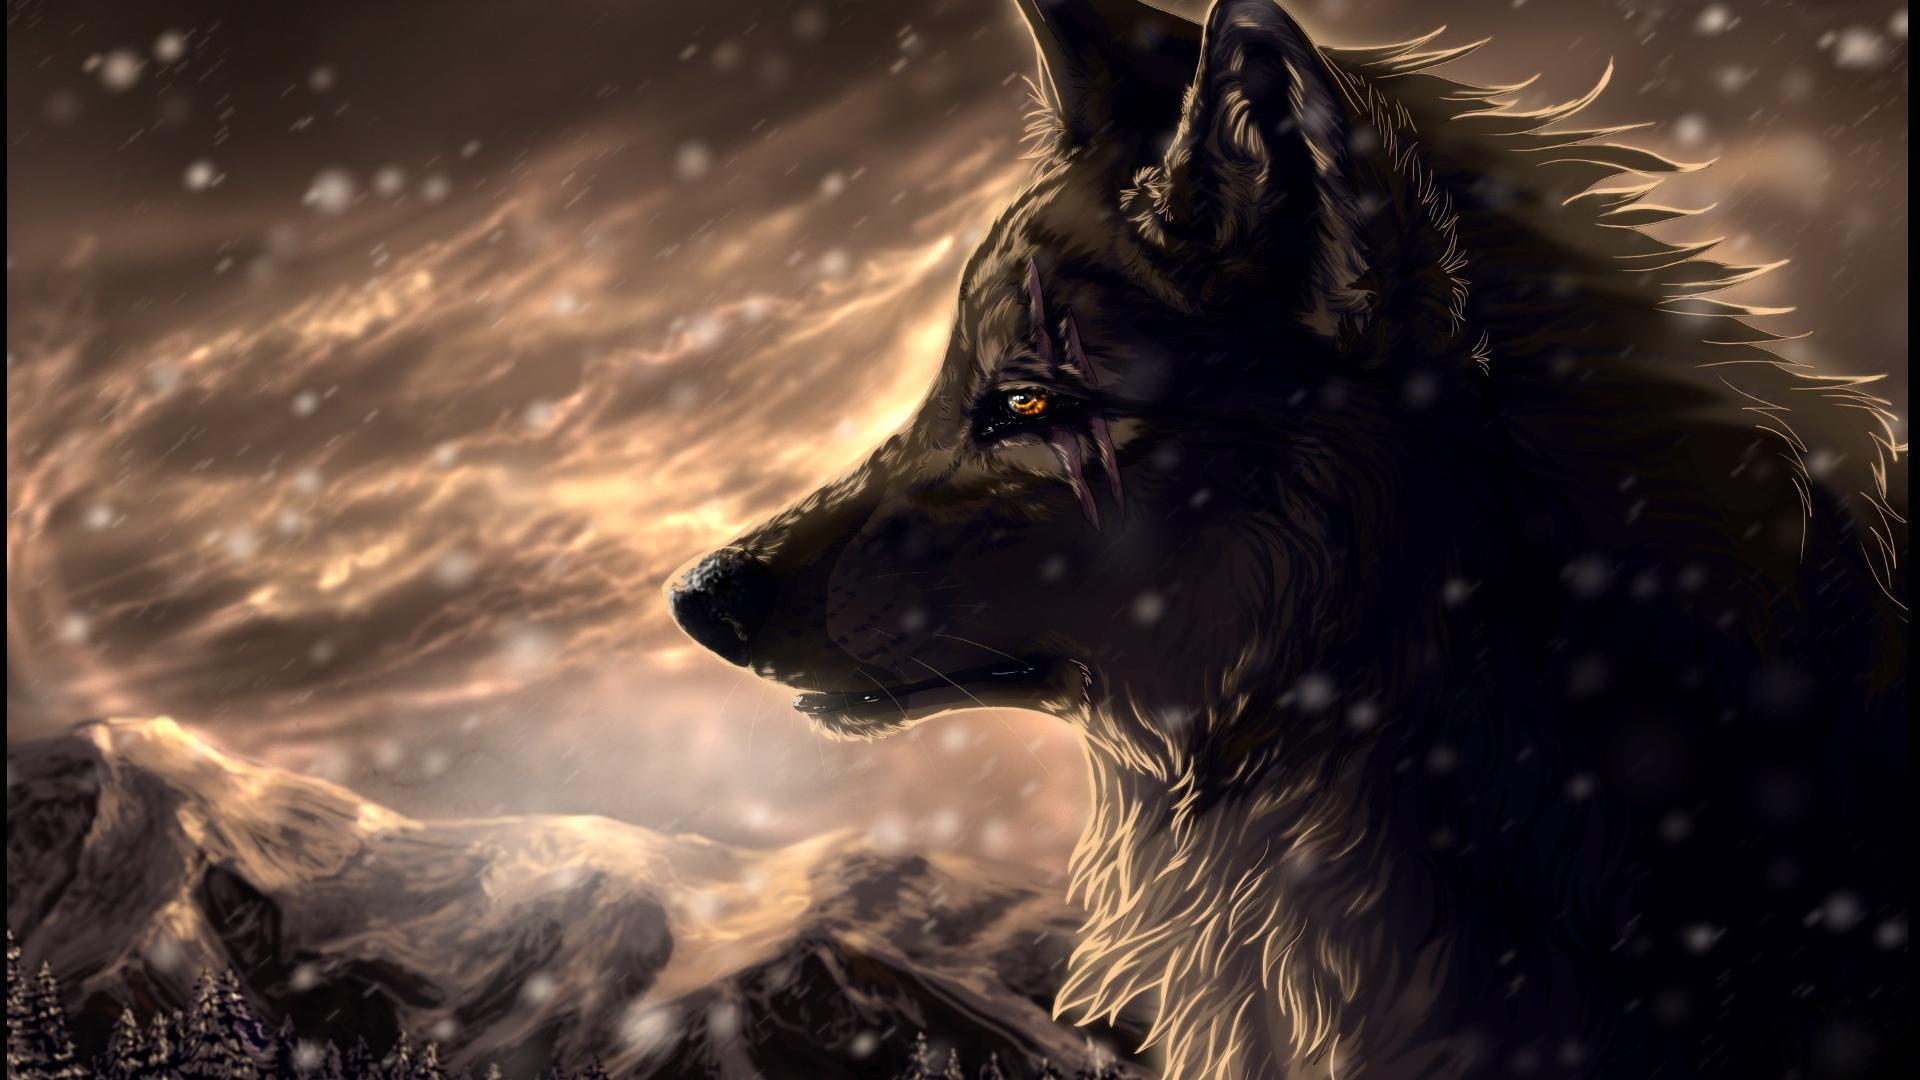 wolf hd wallpaper cave